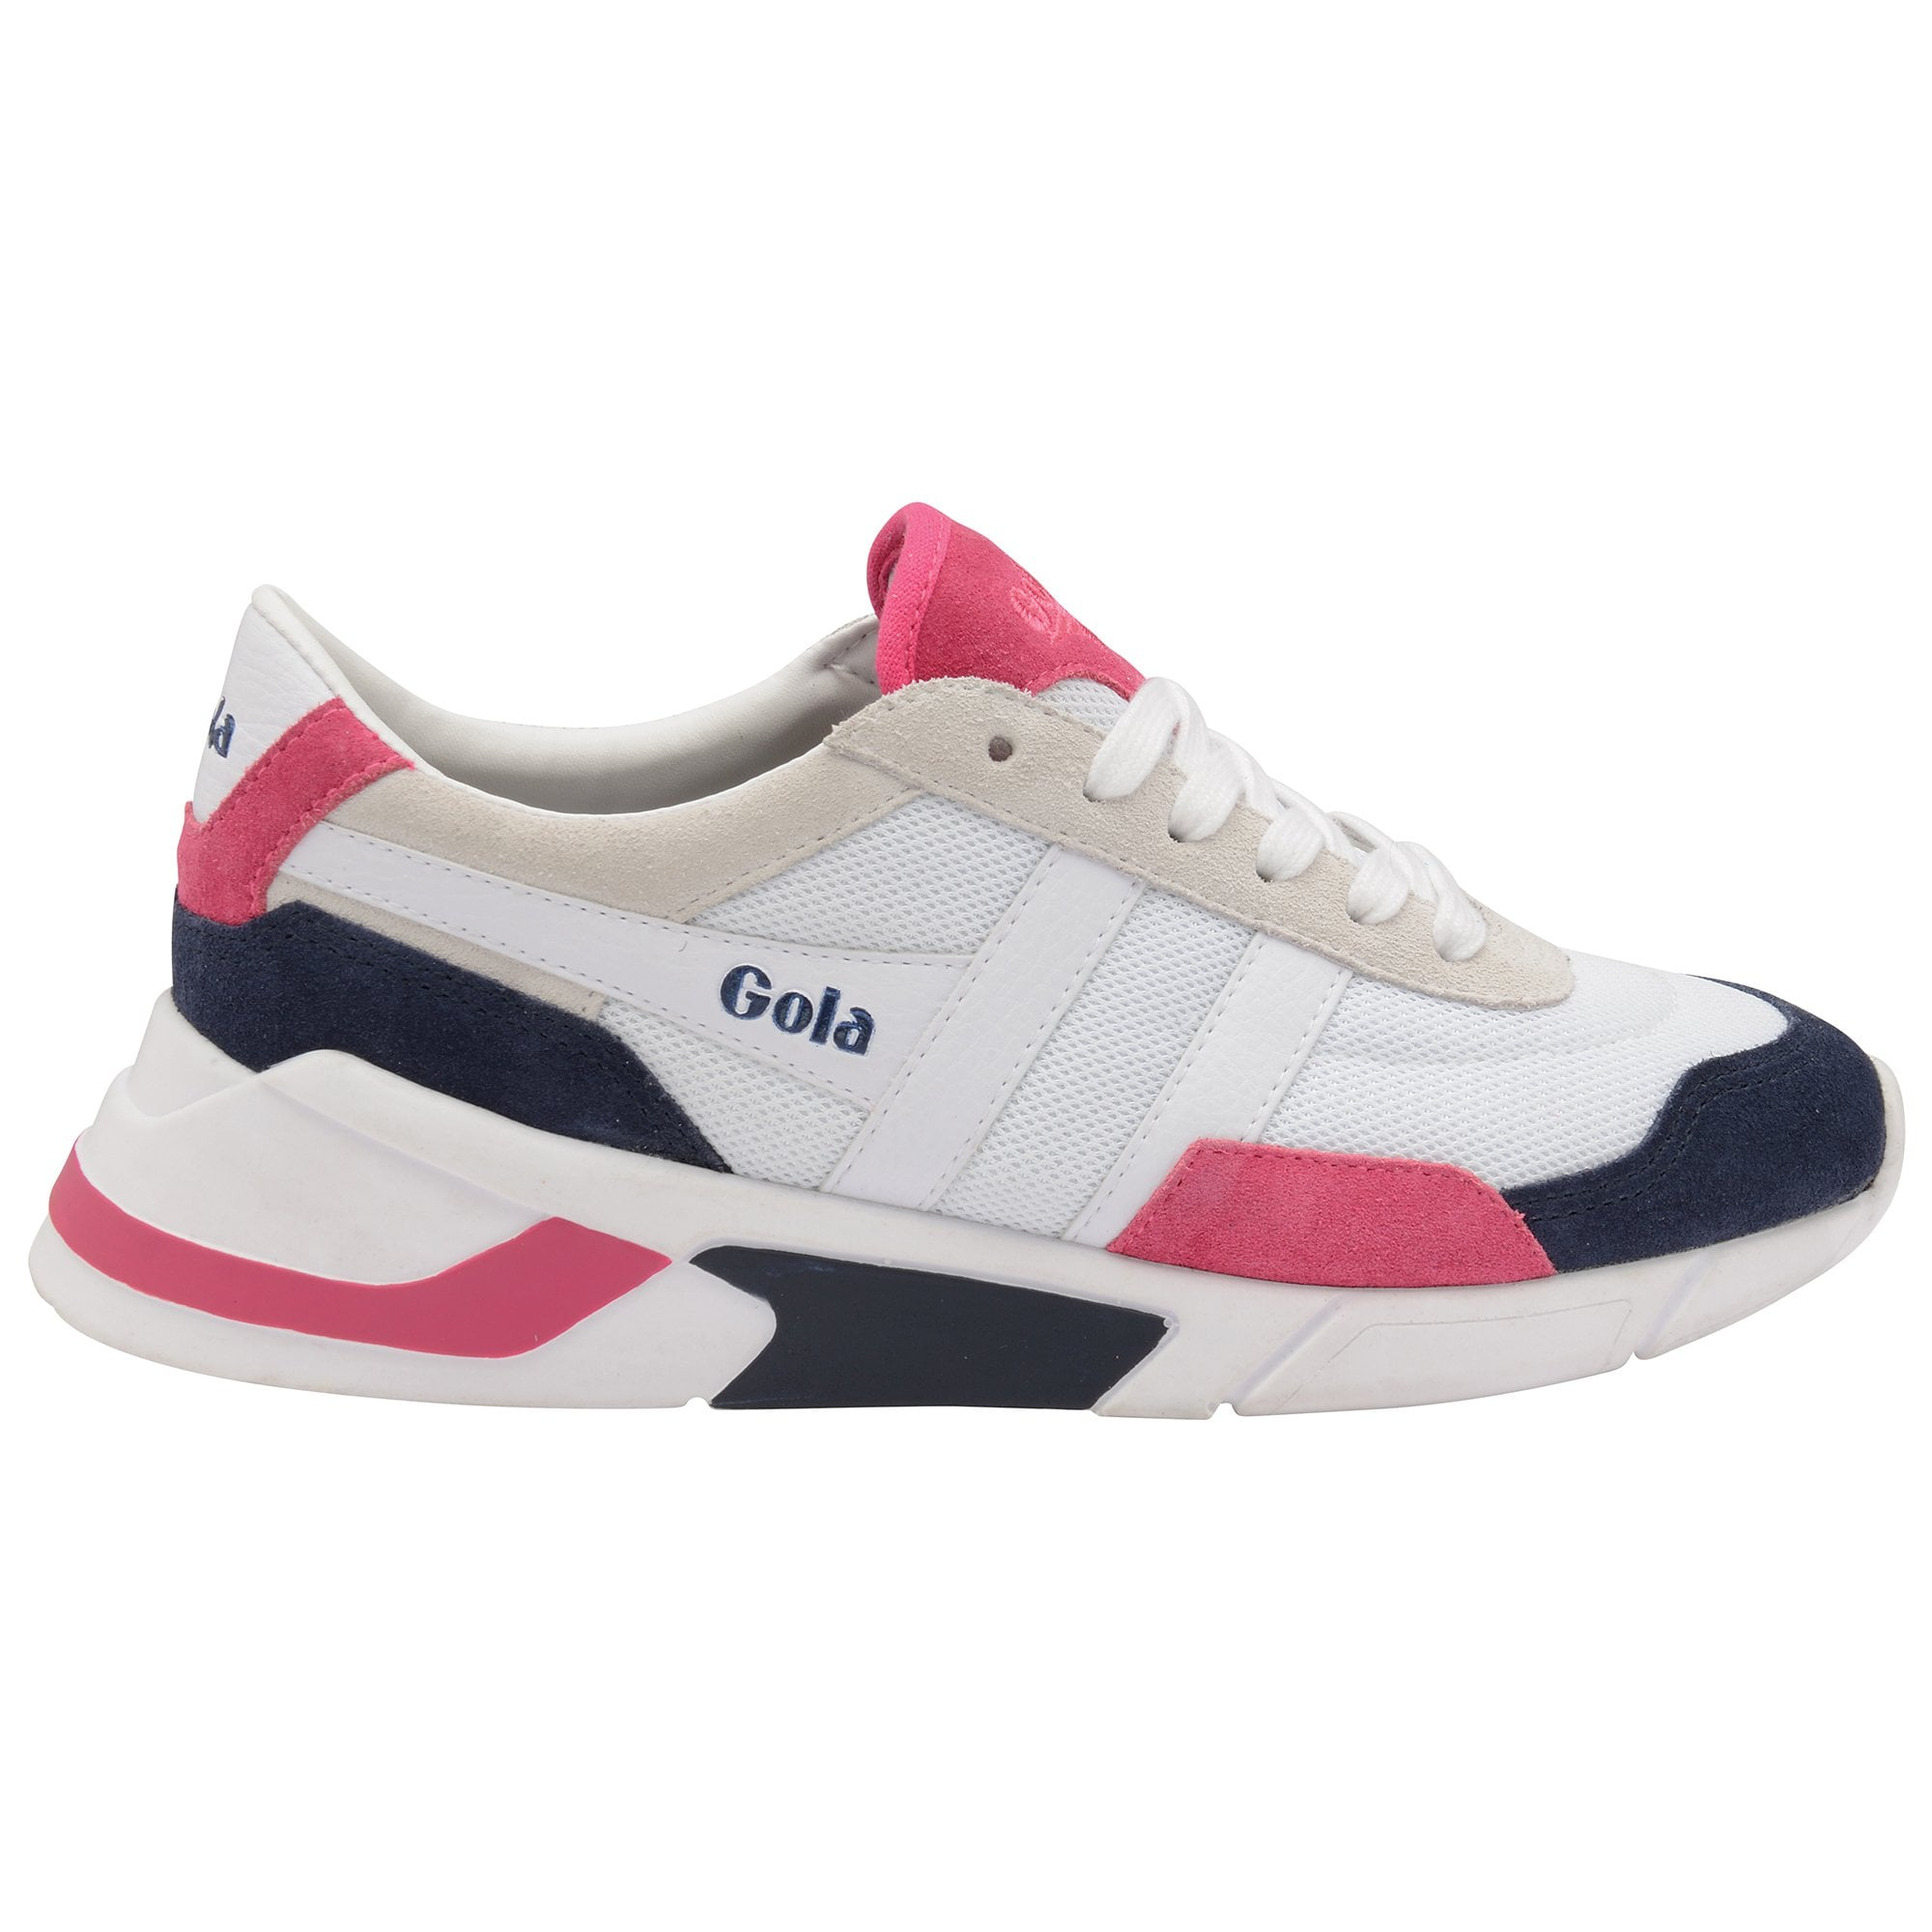 Buy Gola womens Eclipse trainers in white/navy/fuchsia online at gola